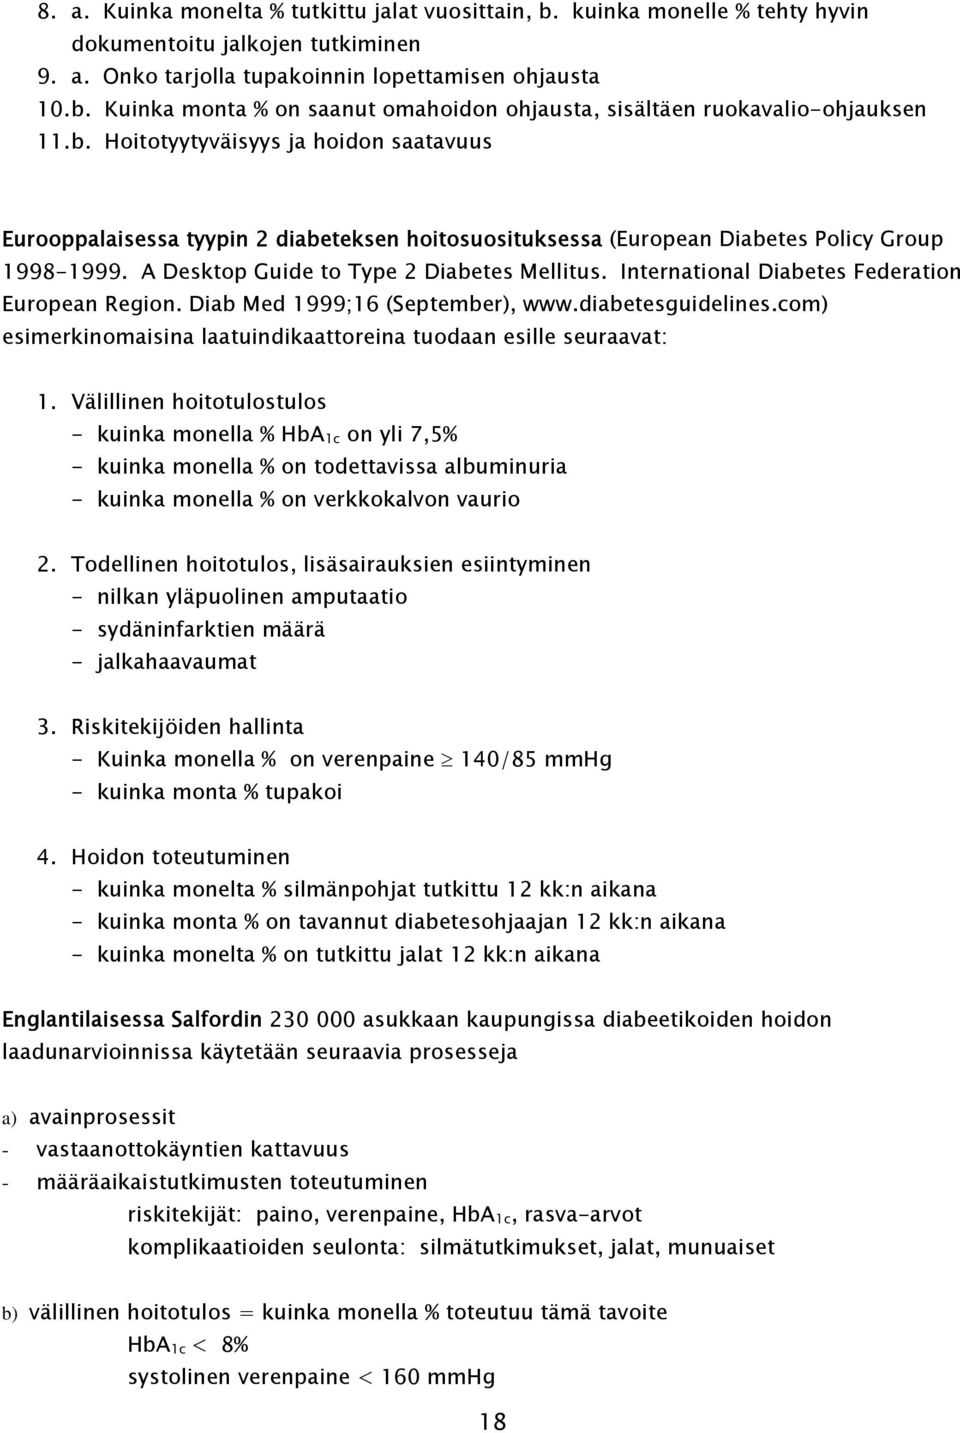 International Diabetes Federation European Region. Diab Med 1999;16 (September), www.diabetesguidelines.com) esimerkinomaisina laatuindikaattoreina tuodaan esille seuraavat: 1.